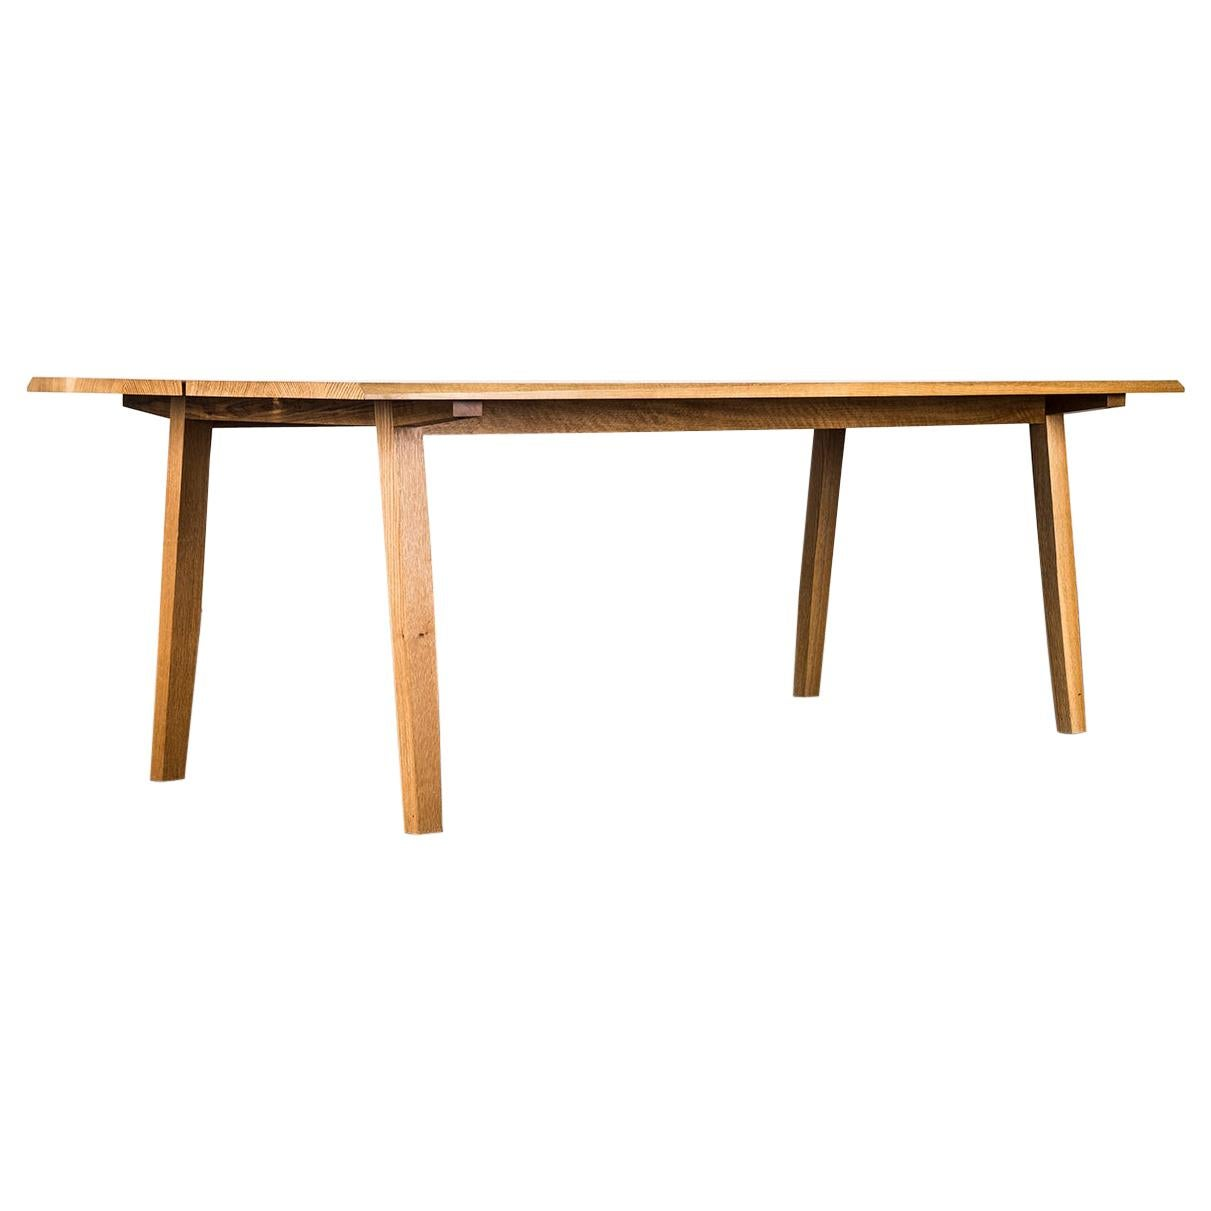 Dining Table, 8 Seat, Custom, Walnut, Modern, Rift Hardwood, Semigood Design